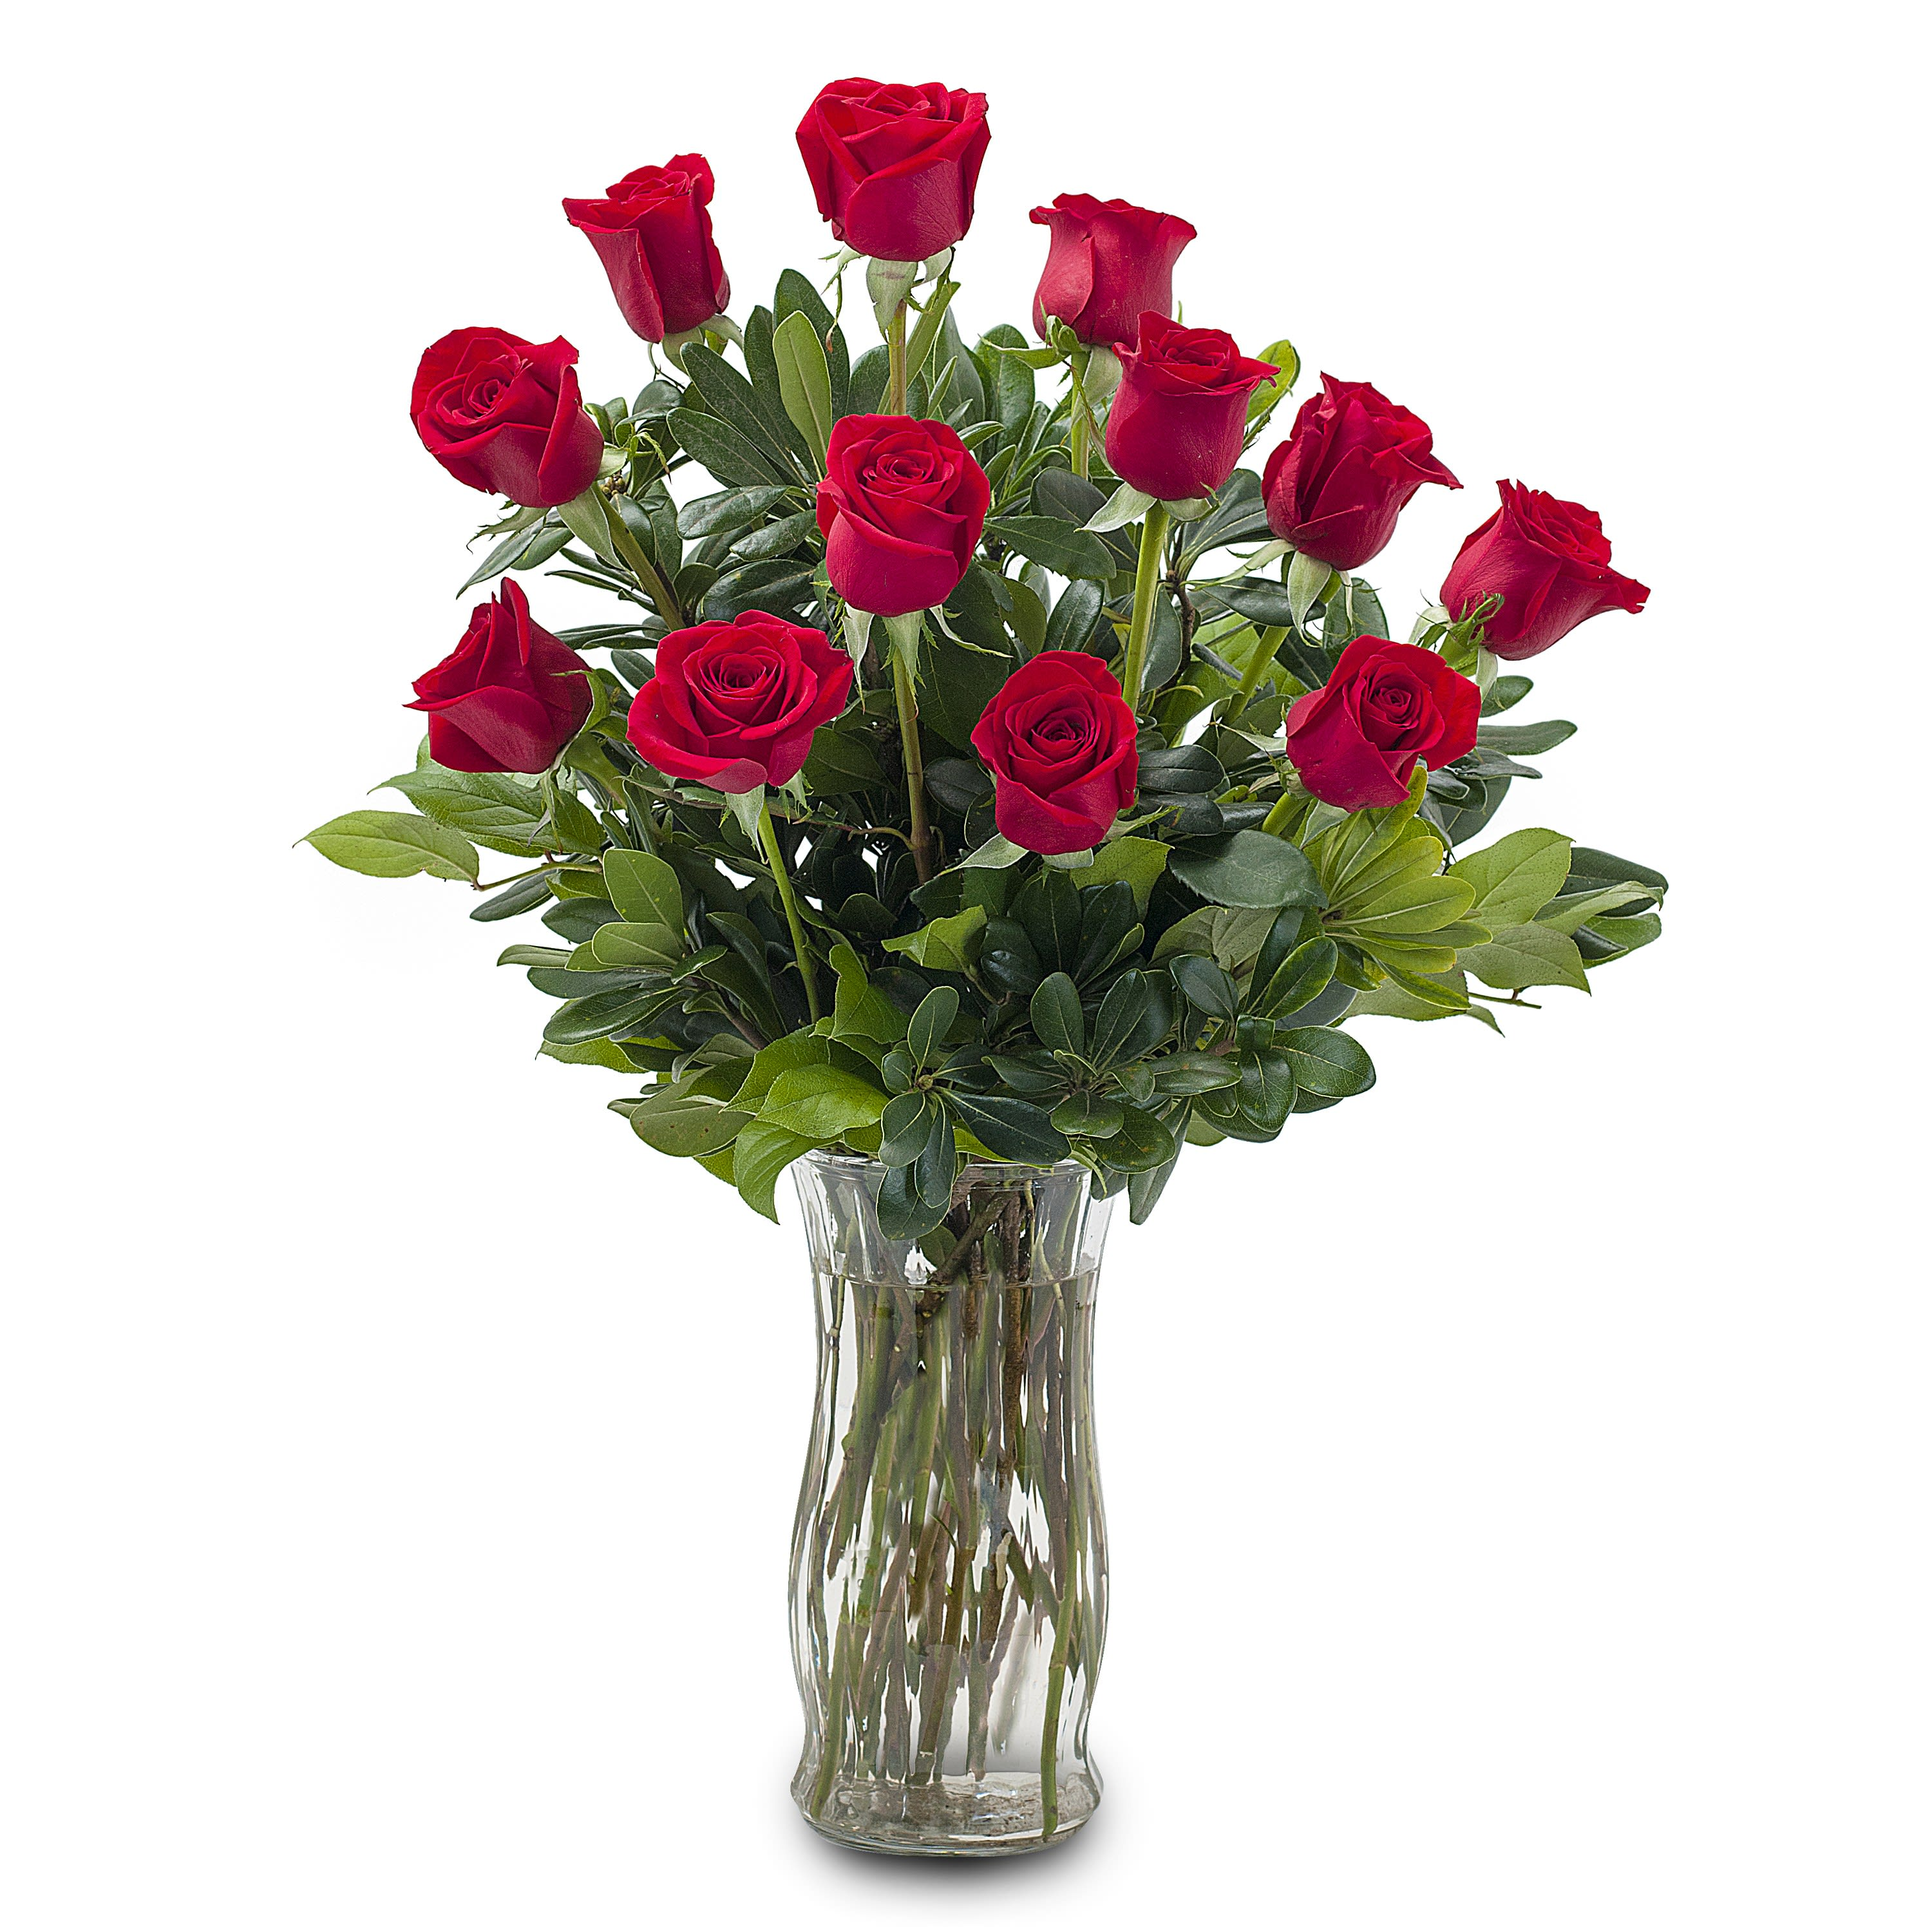 Classic Romance Beautiful Red Roses Lush Accents in a Vase 3 Sizes Available - Red Rose Delivery ...